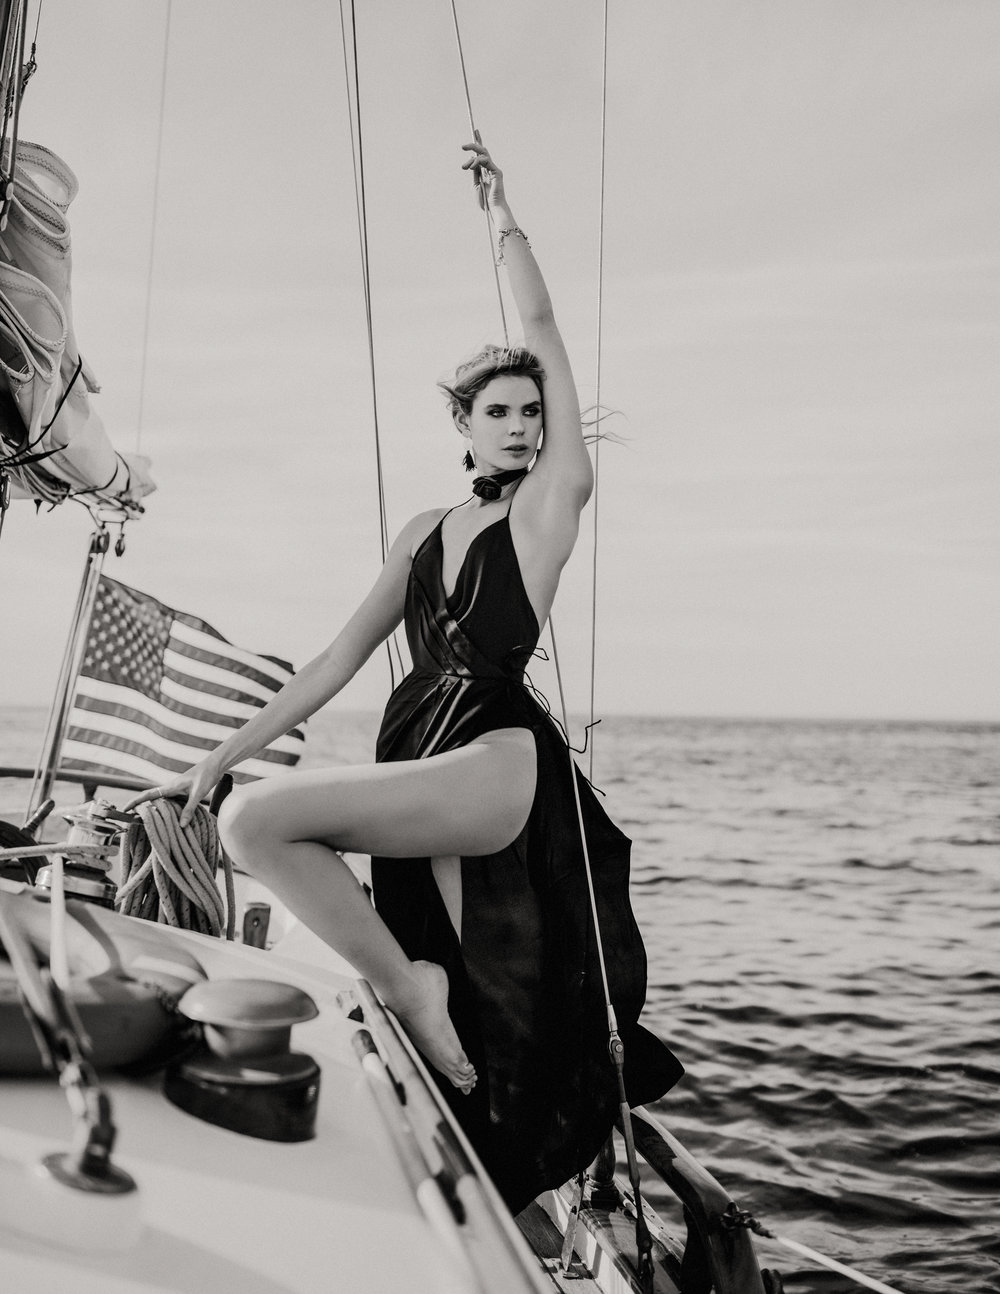 Sailing Editorials (27 of 36).jpg